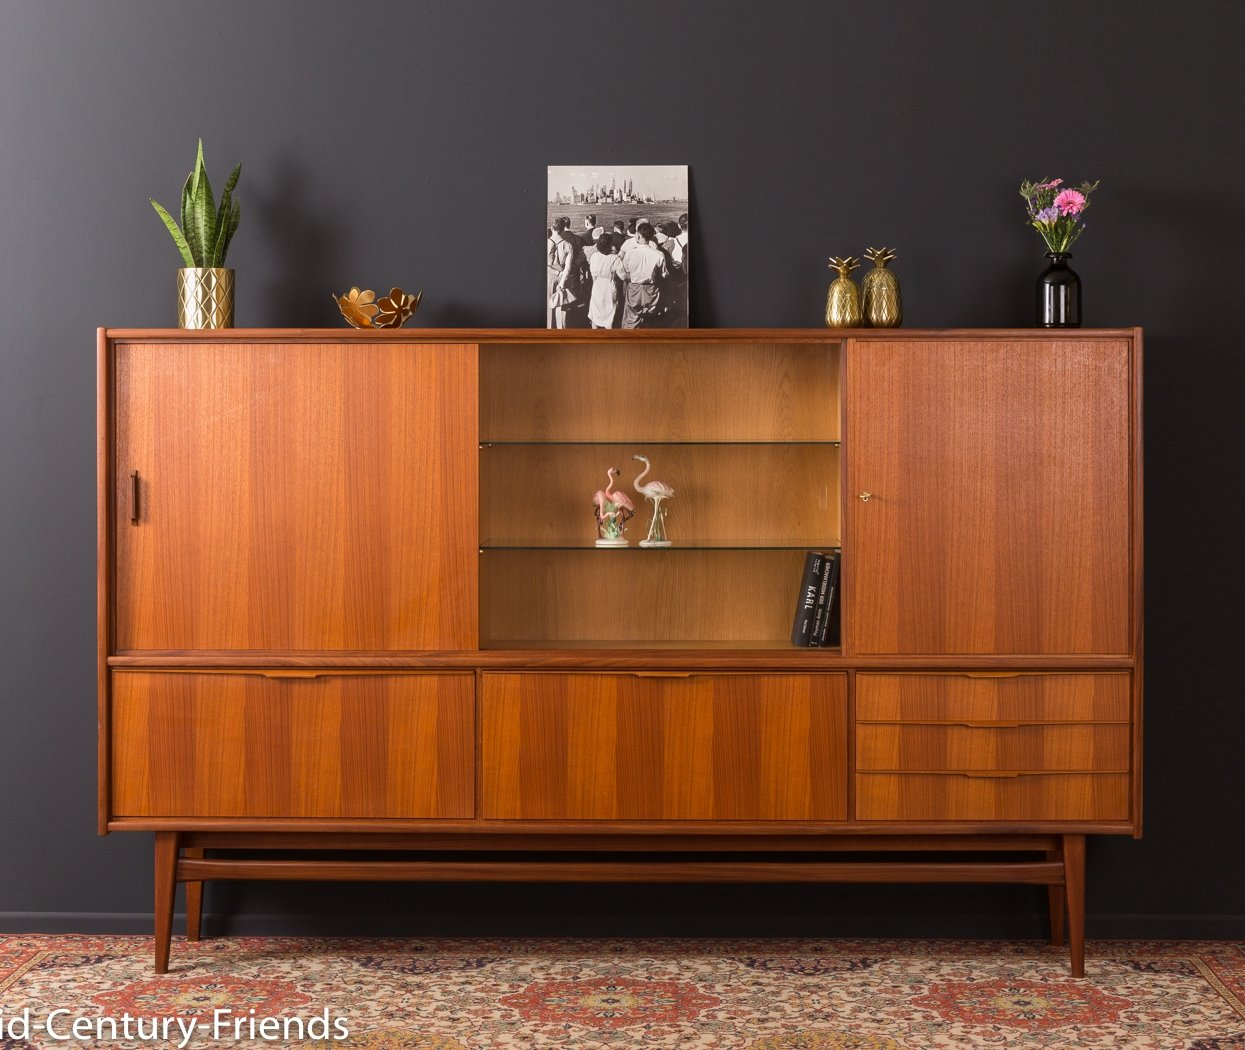 German Buffet By Bartel Premium Möbel From The 1960s 97590